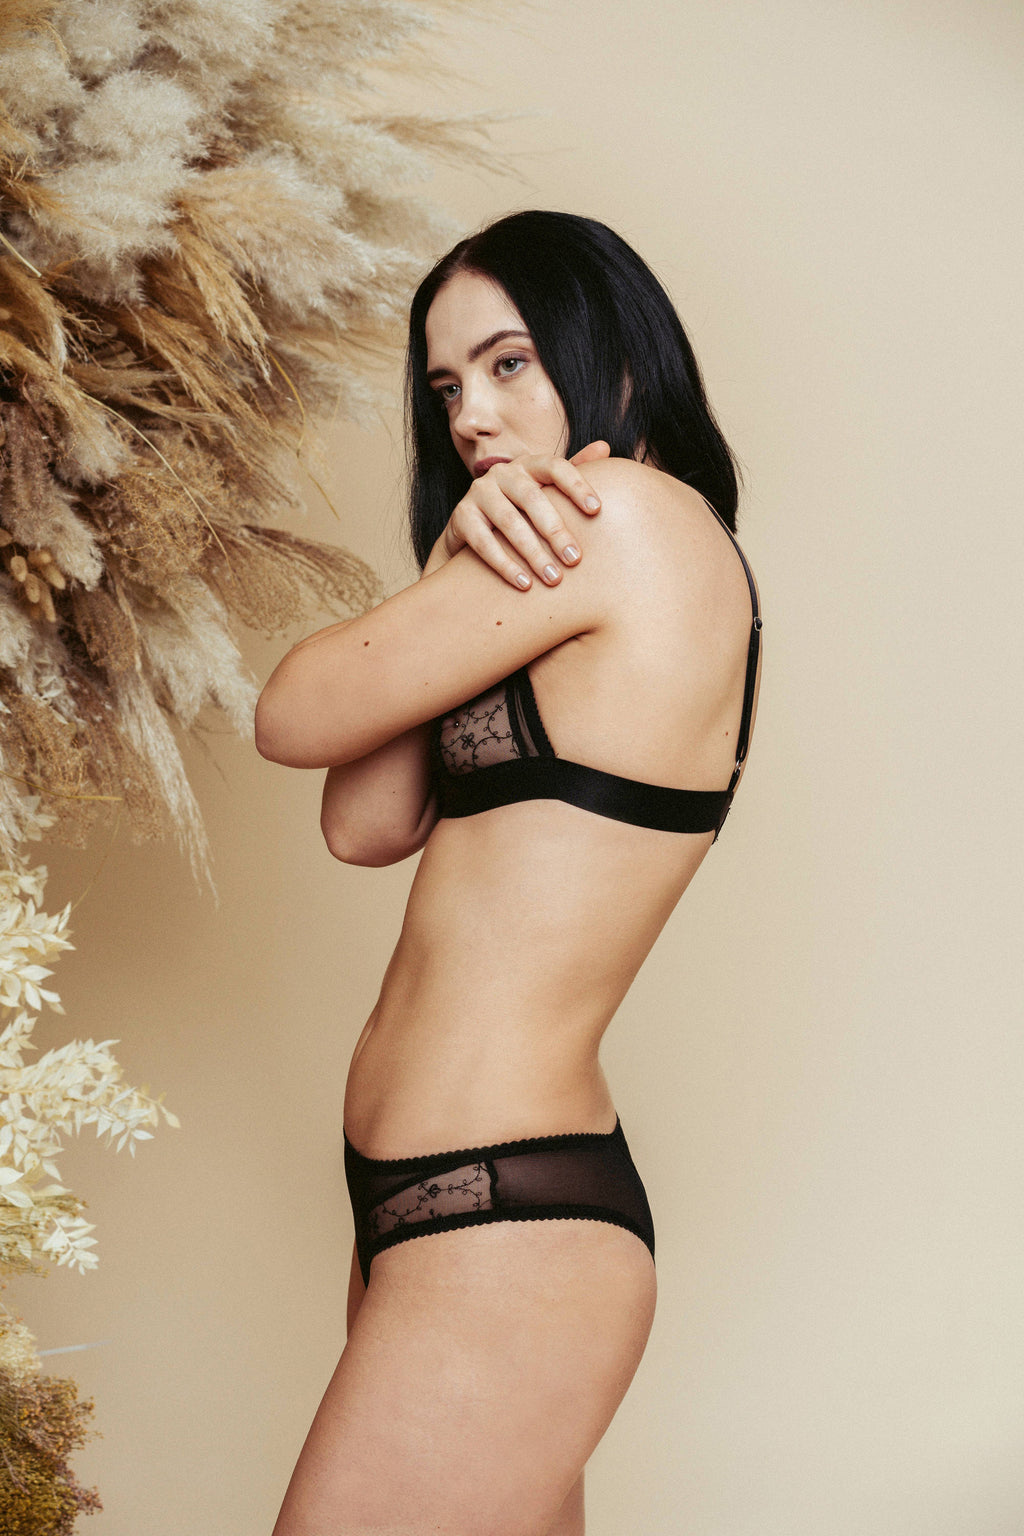 Model shot from the side, wearing the Kauf Brazilian Knicker and Triangle Bralette in black